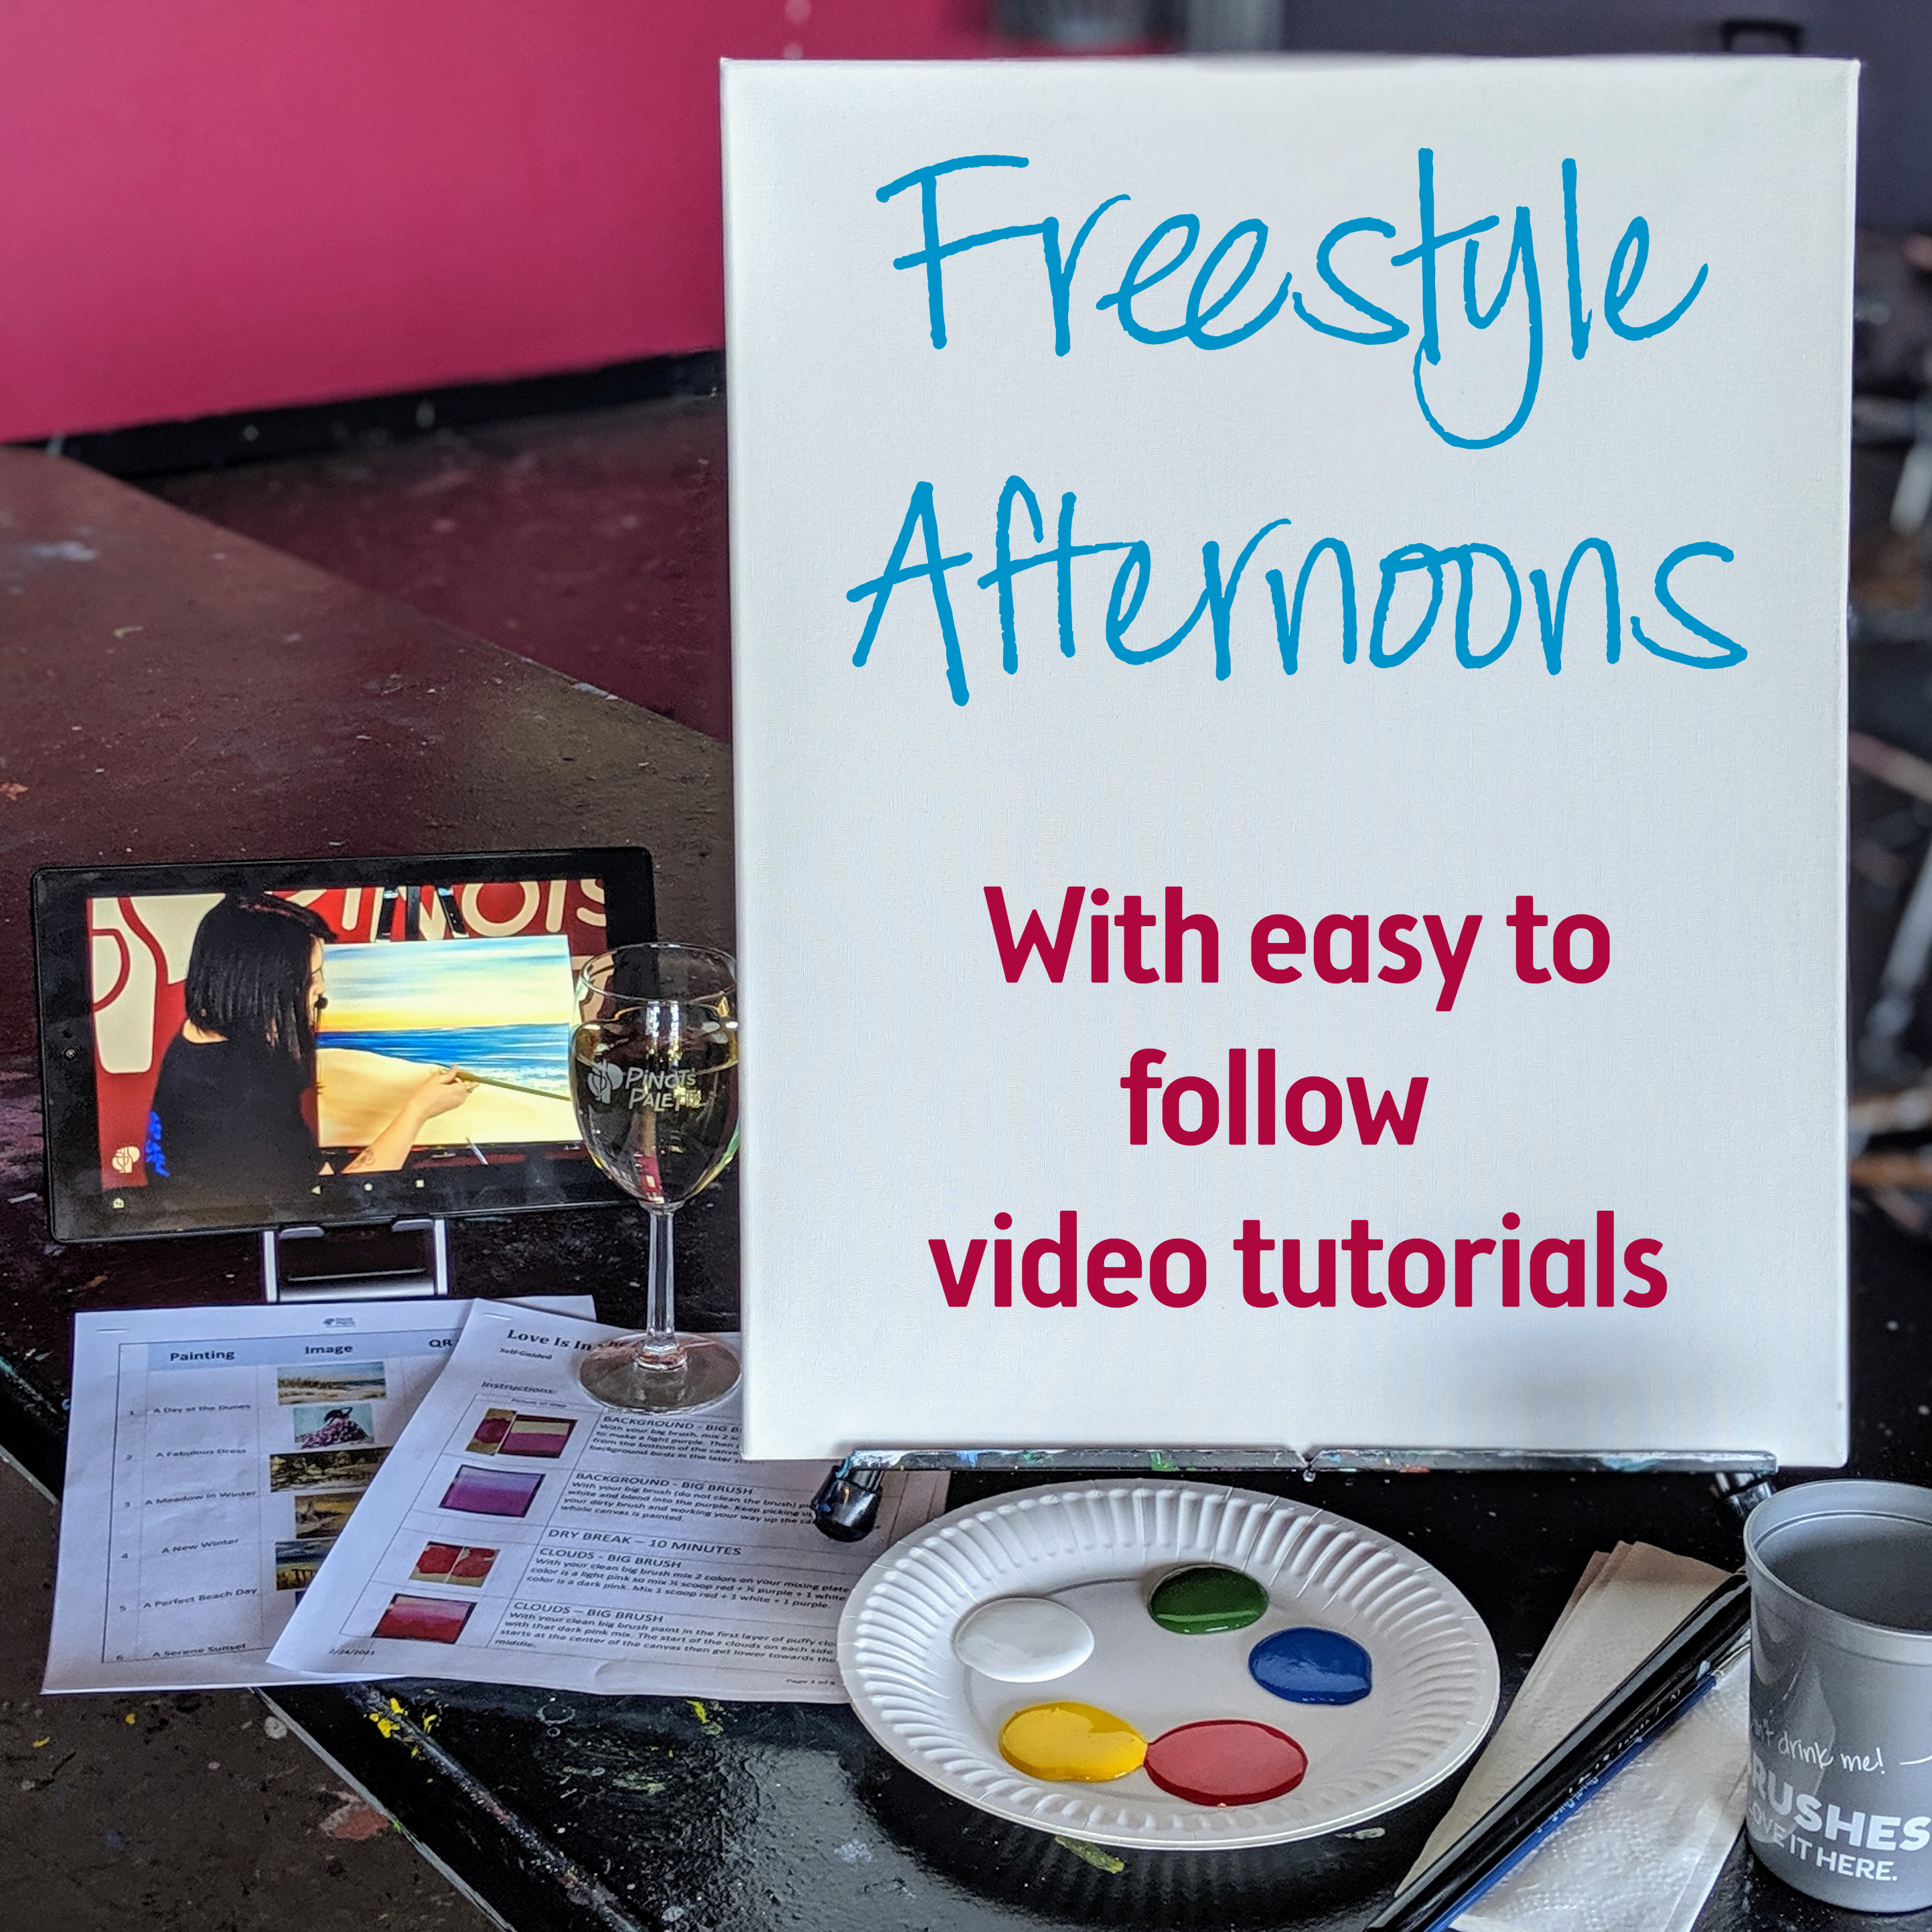 Freestyle Afternoons are back!